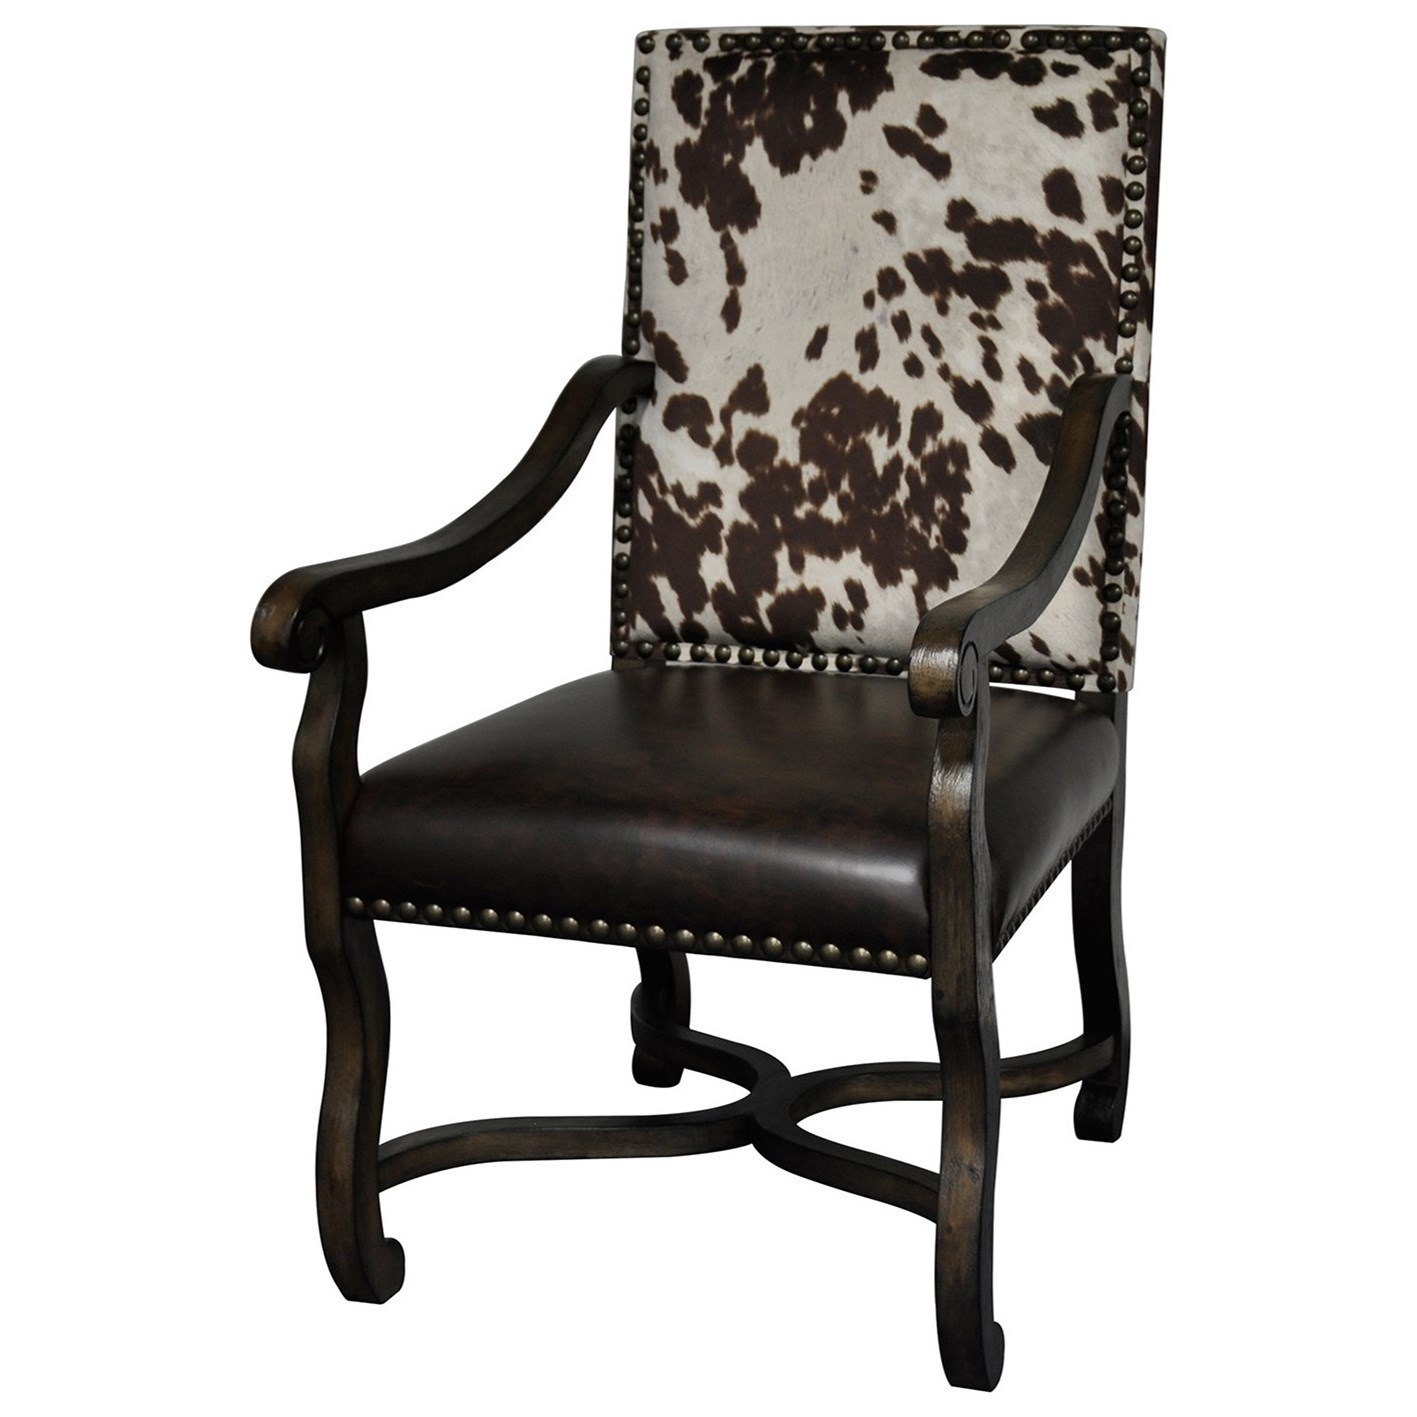 Cow Hide Chair Accent Furniture Mesquite Ranch Leather And Faux Cowhide Arm Chair By Crestview Collection At Great American Home Store